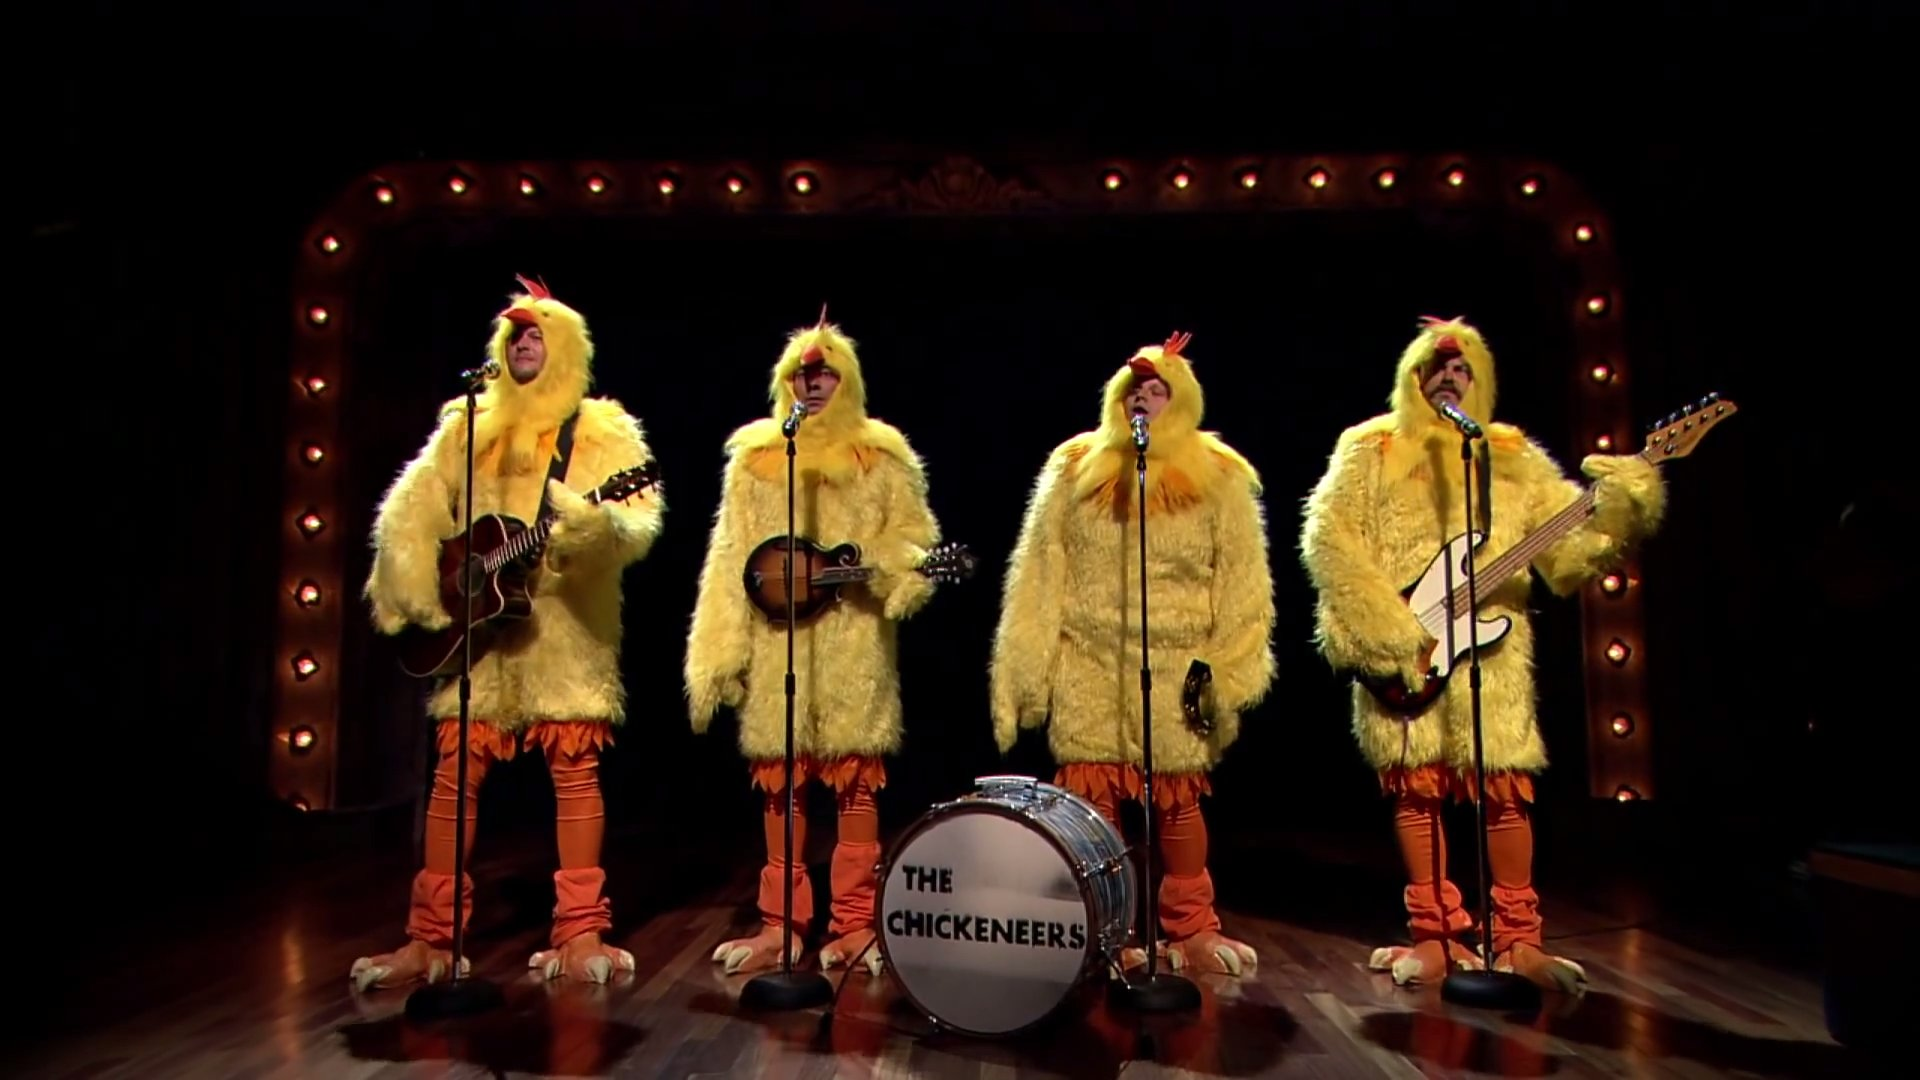 The Chickeneers Fallon